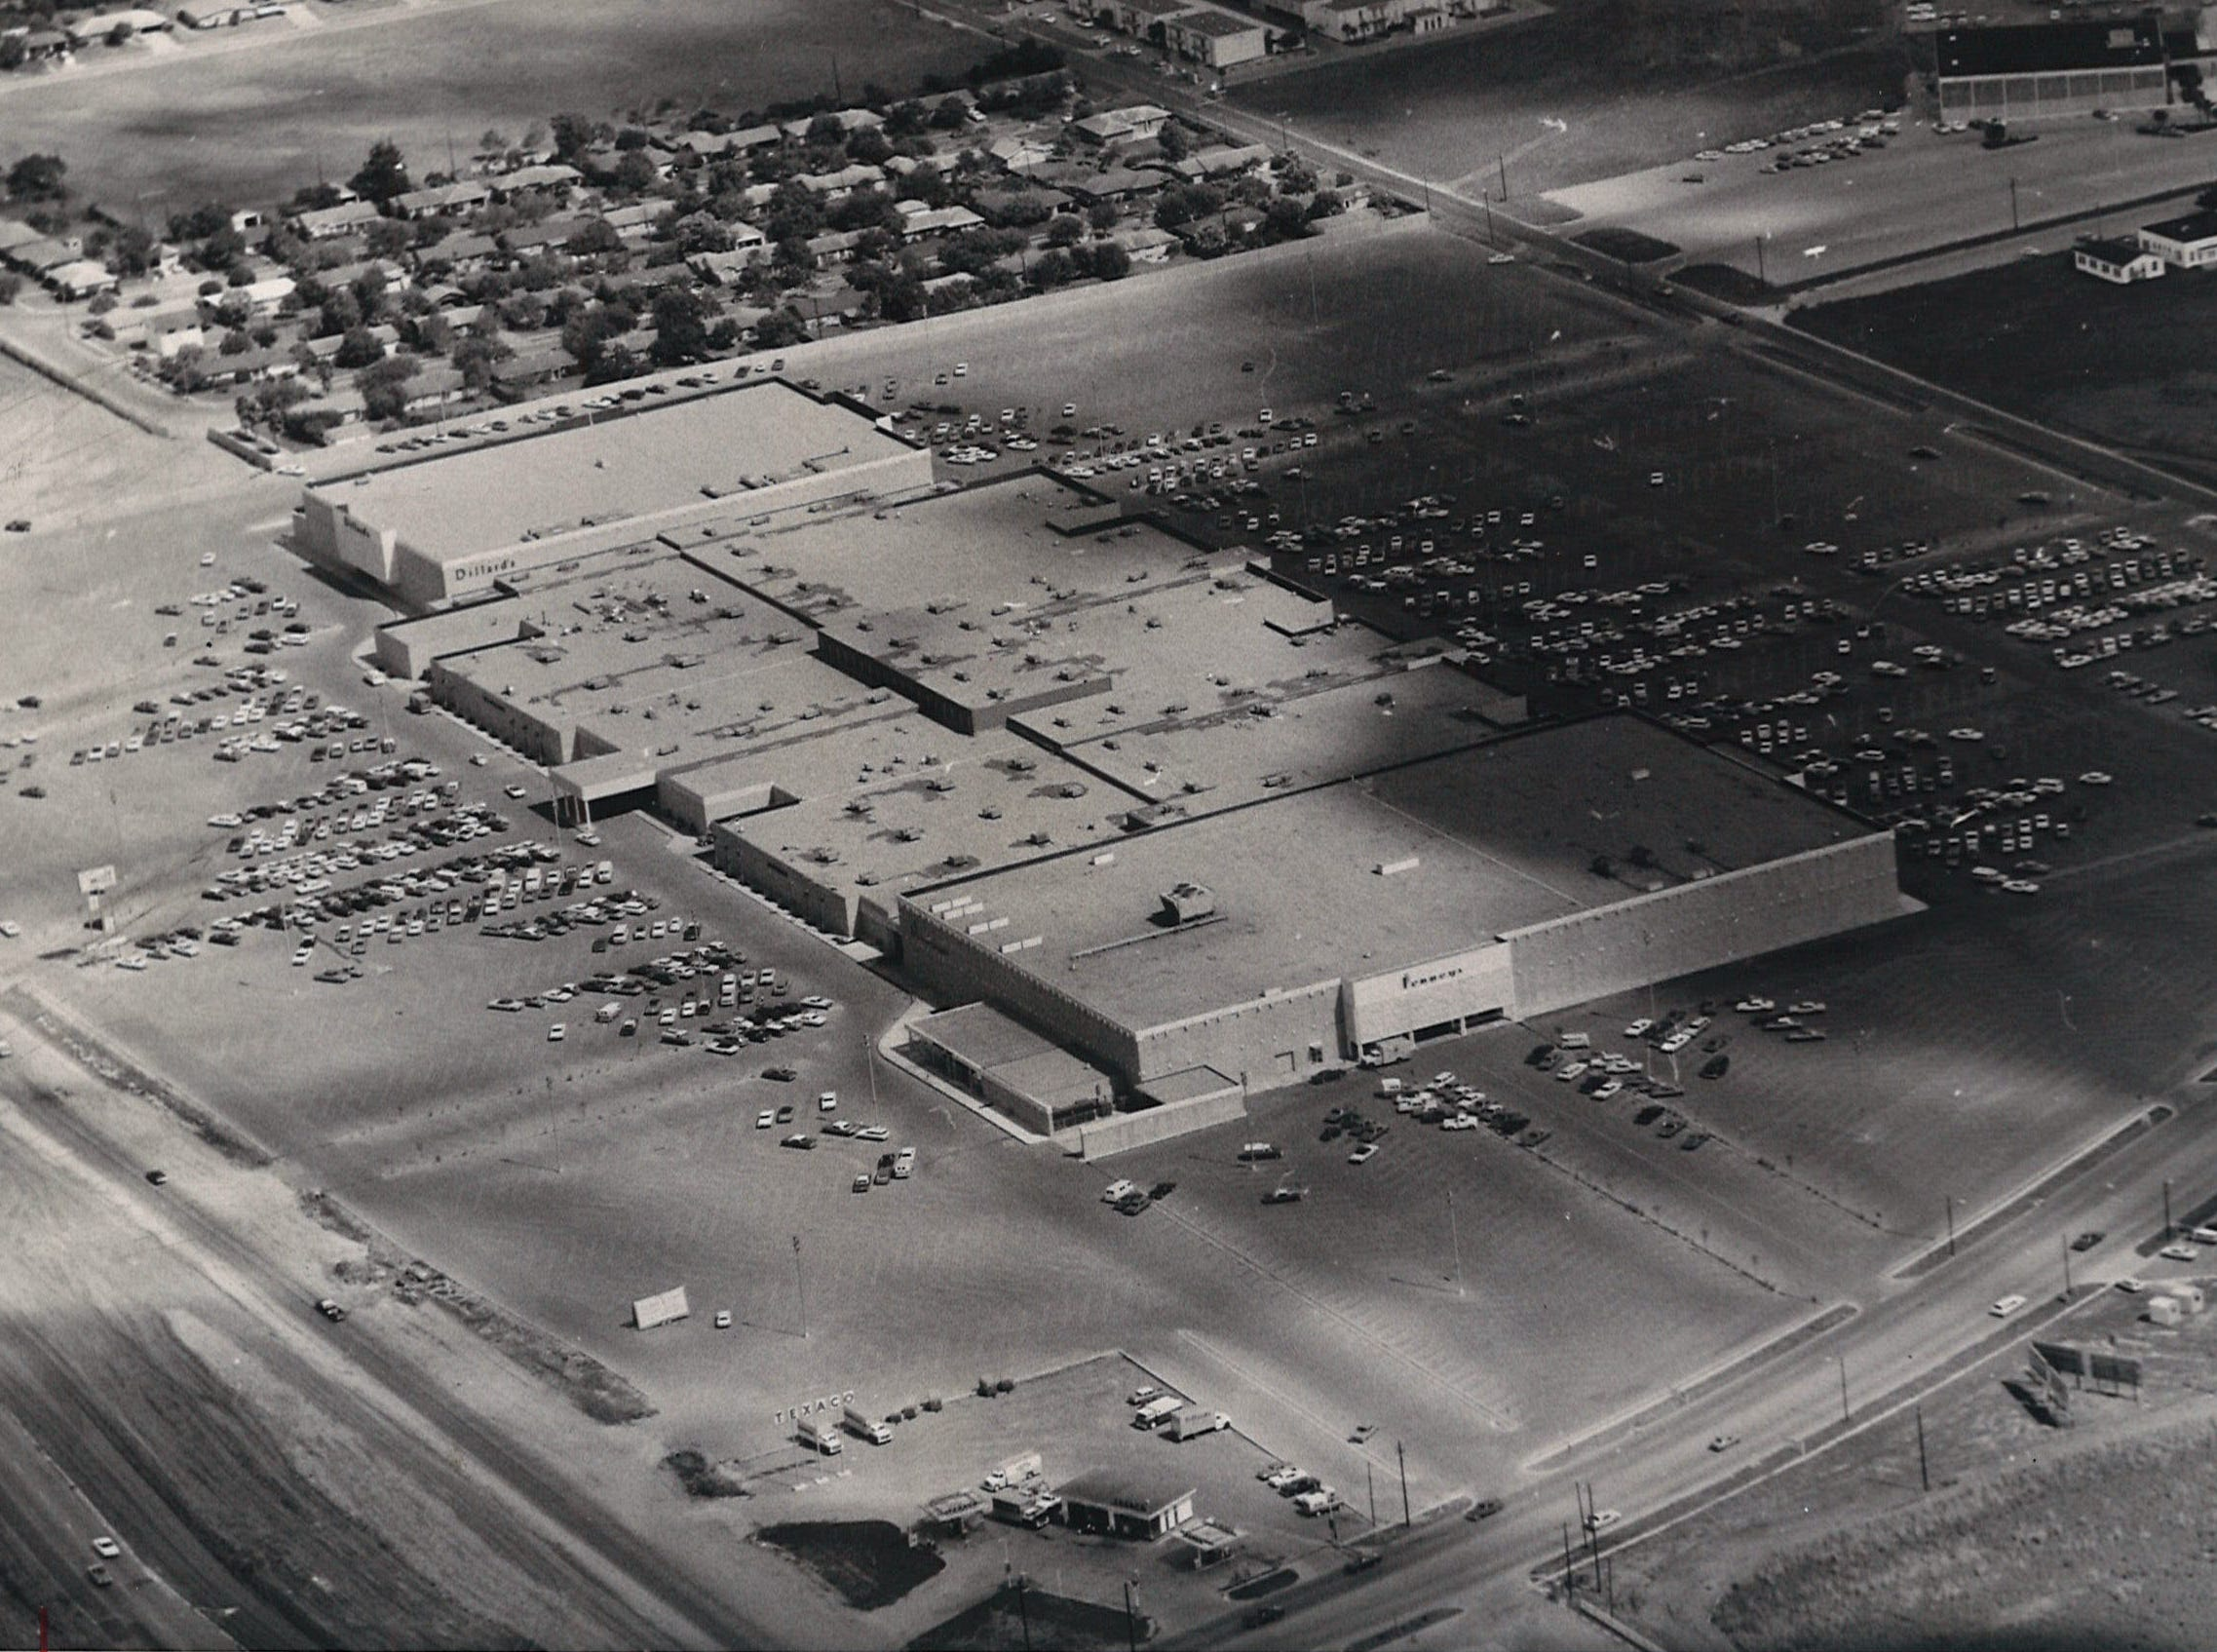 An aerial view of Padre Staples Mall in Corpus Christi in July 1970. The mall's grand opening was July 30 that year.